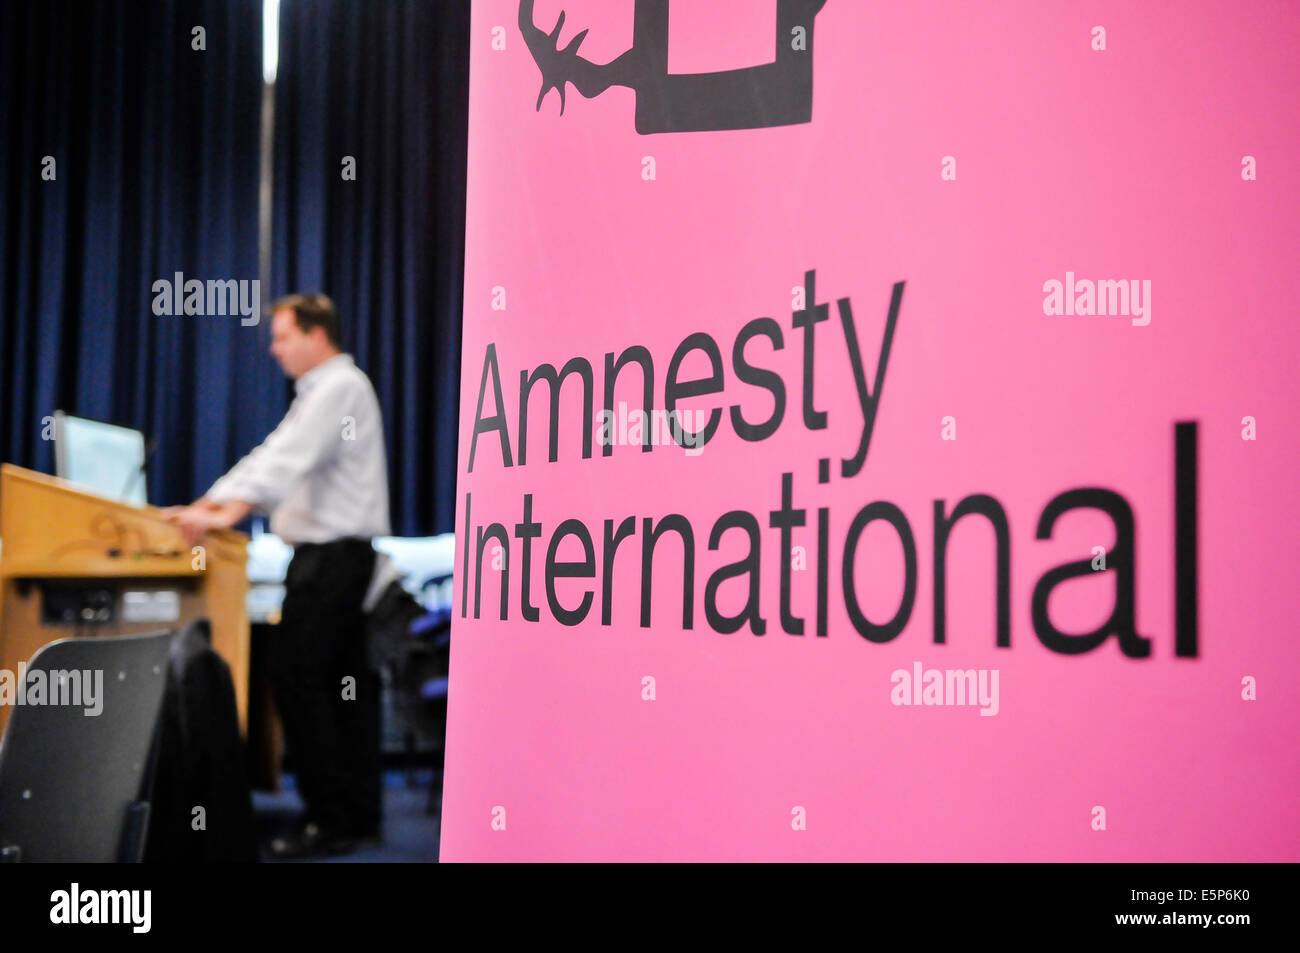 Belfast, Northern Ireland. 4th Aug, 2014.  A man delivers a speech for Amnesty International Credit:  Stephen Barnes/Alamy - Stock Image